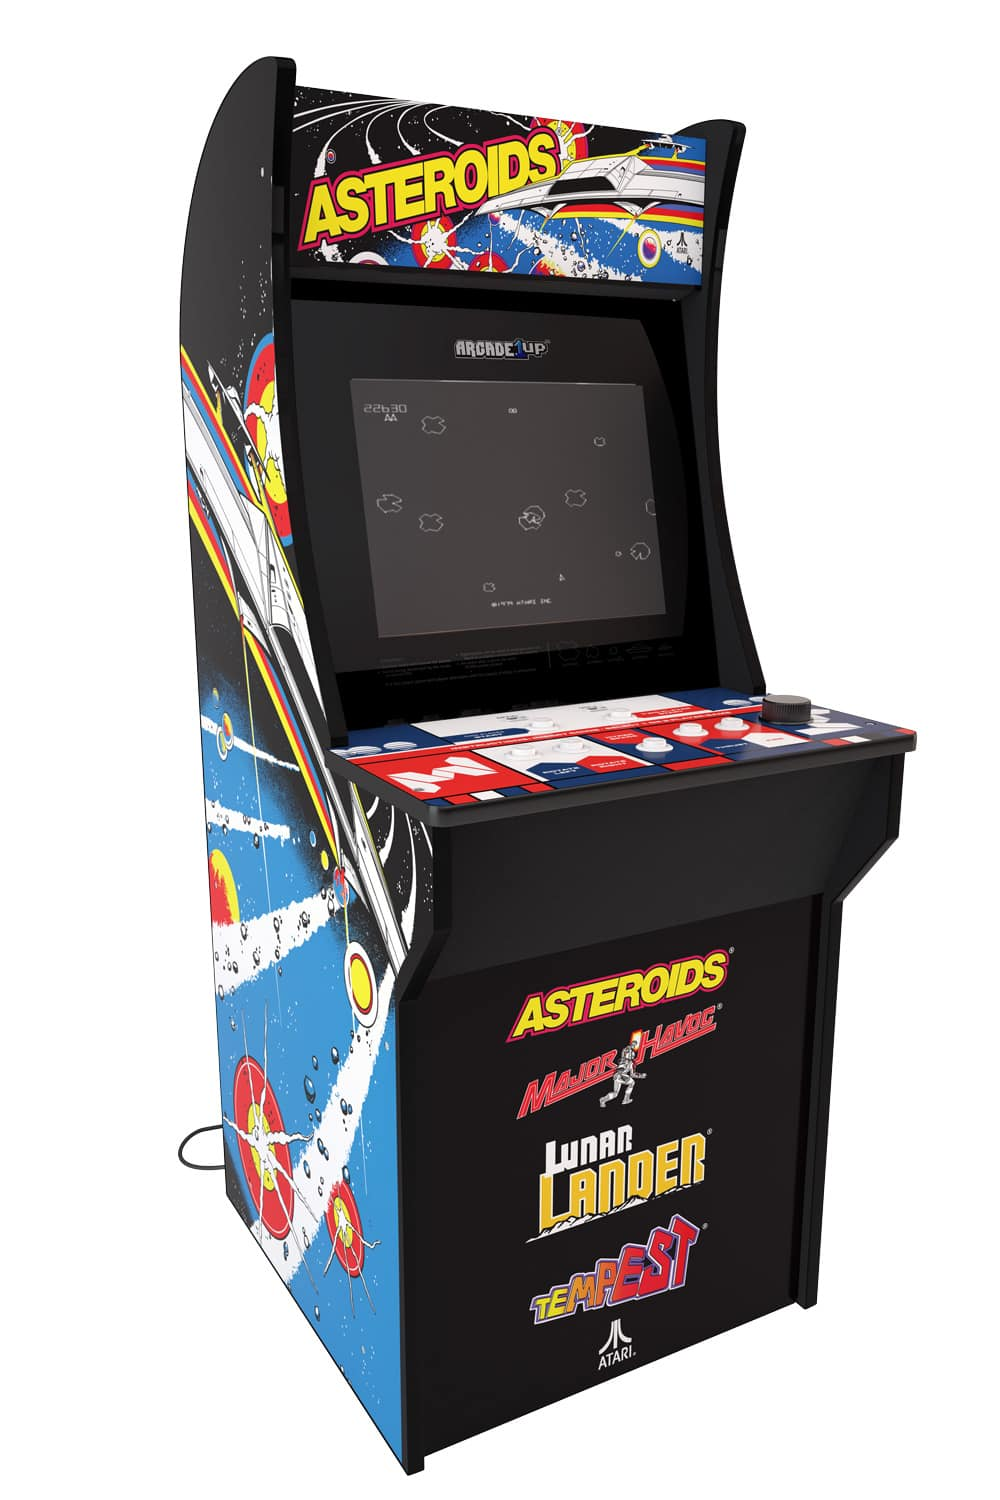 Arcade1Up Video Game Arcade Machine Cabinets (Rampage, Street Fighter, Asteroids or Centipede) $209.99 + Free Shipping